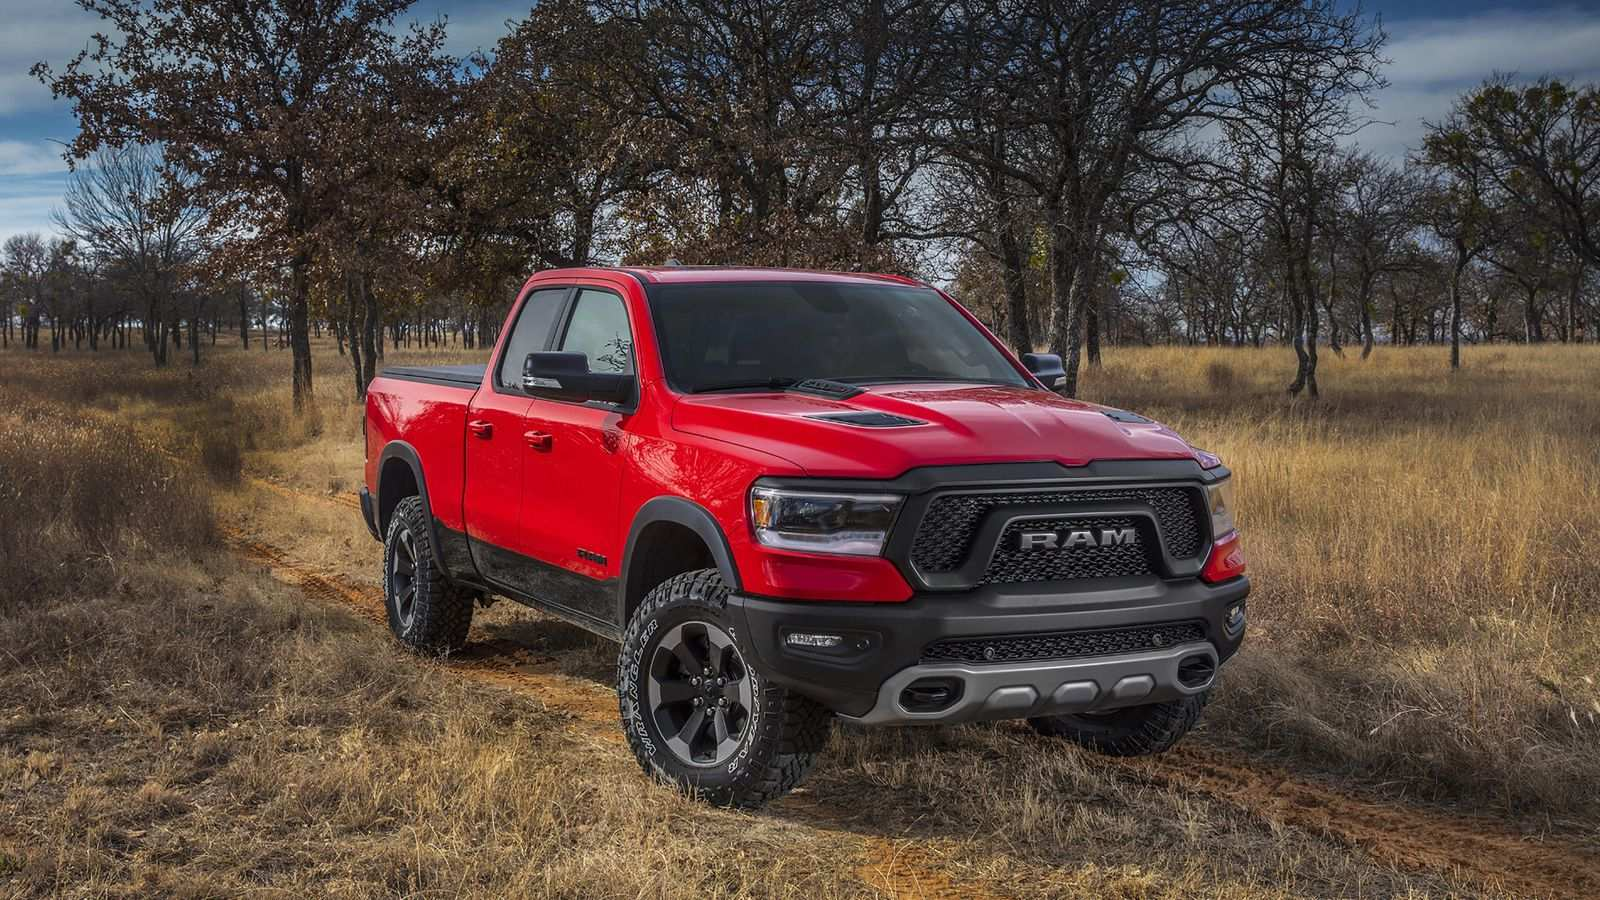 46 Best Review Dodge Truck 2020 Performance and New Engine for Dodge Truck 2020